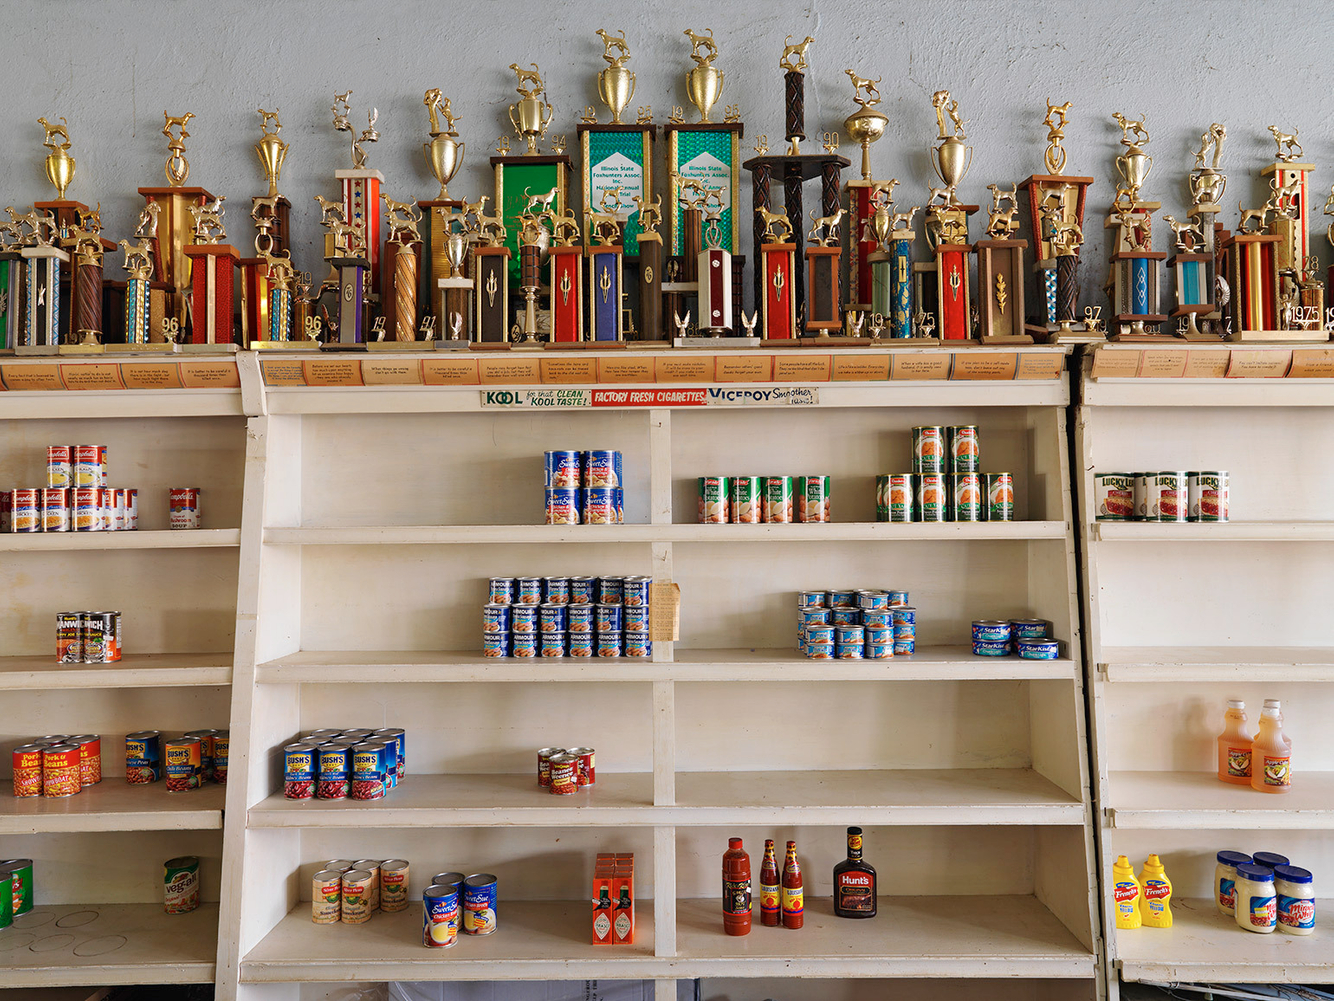 Canned Goods and Trophies, Casper's General Store, Perks, IL 2009